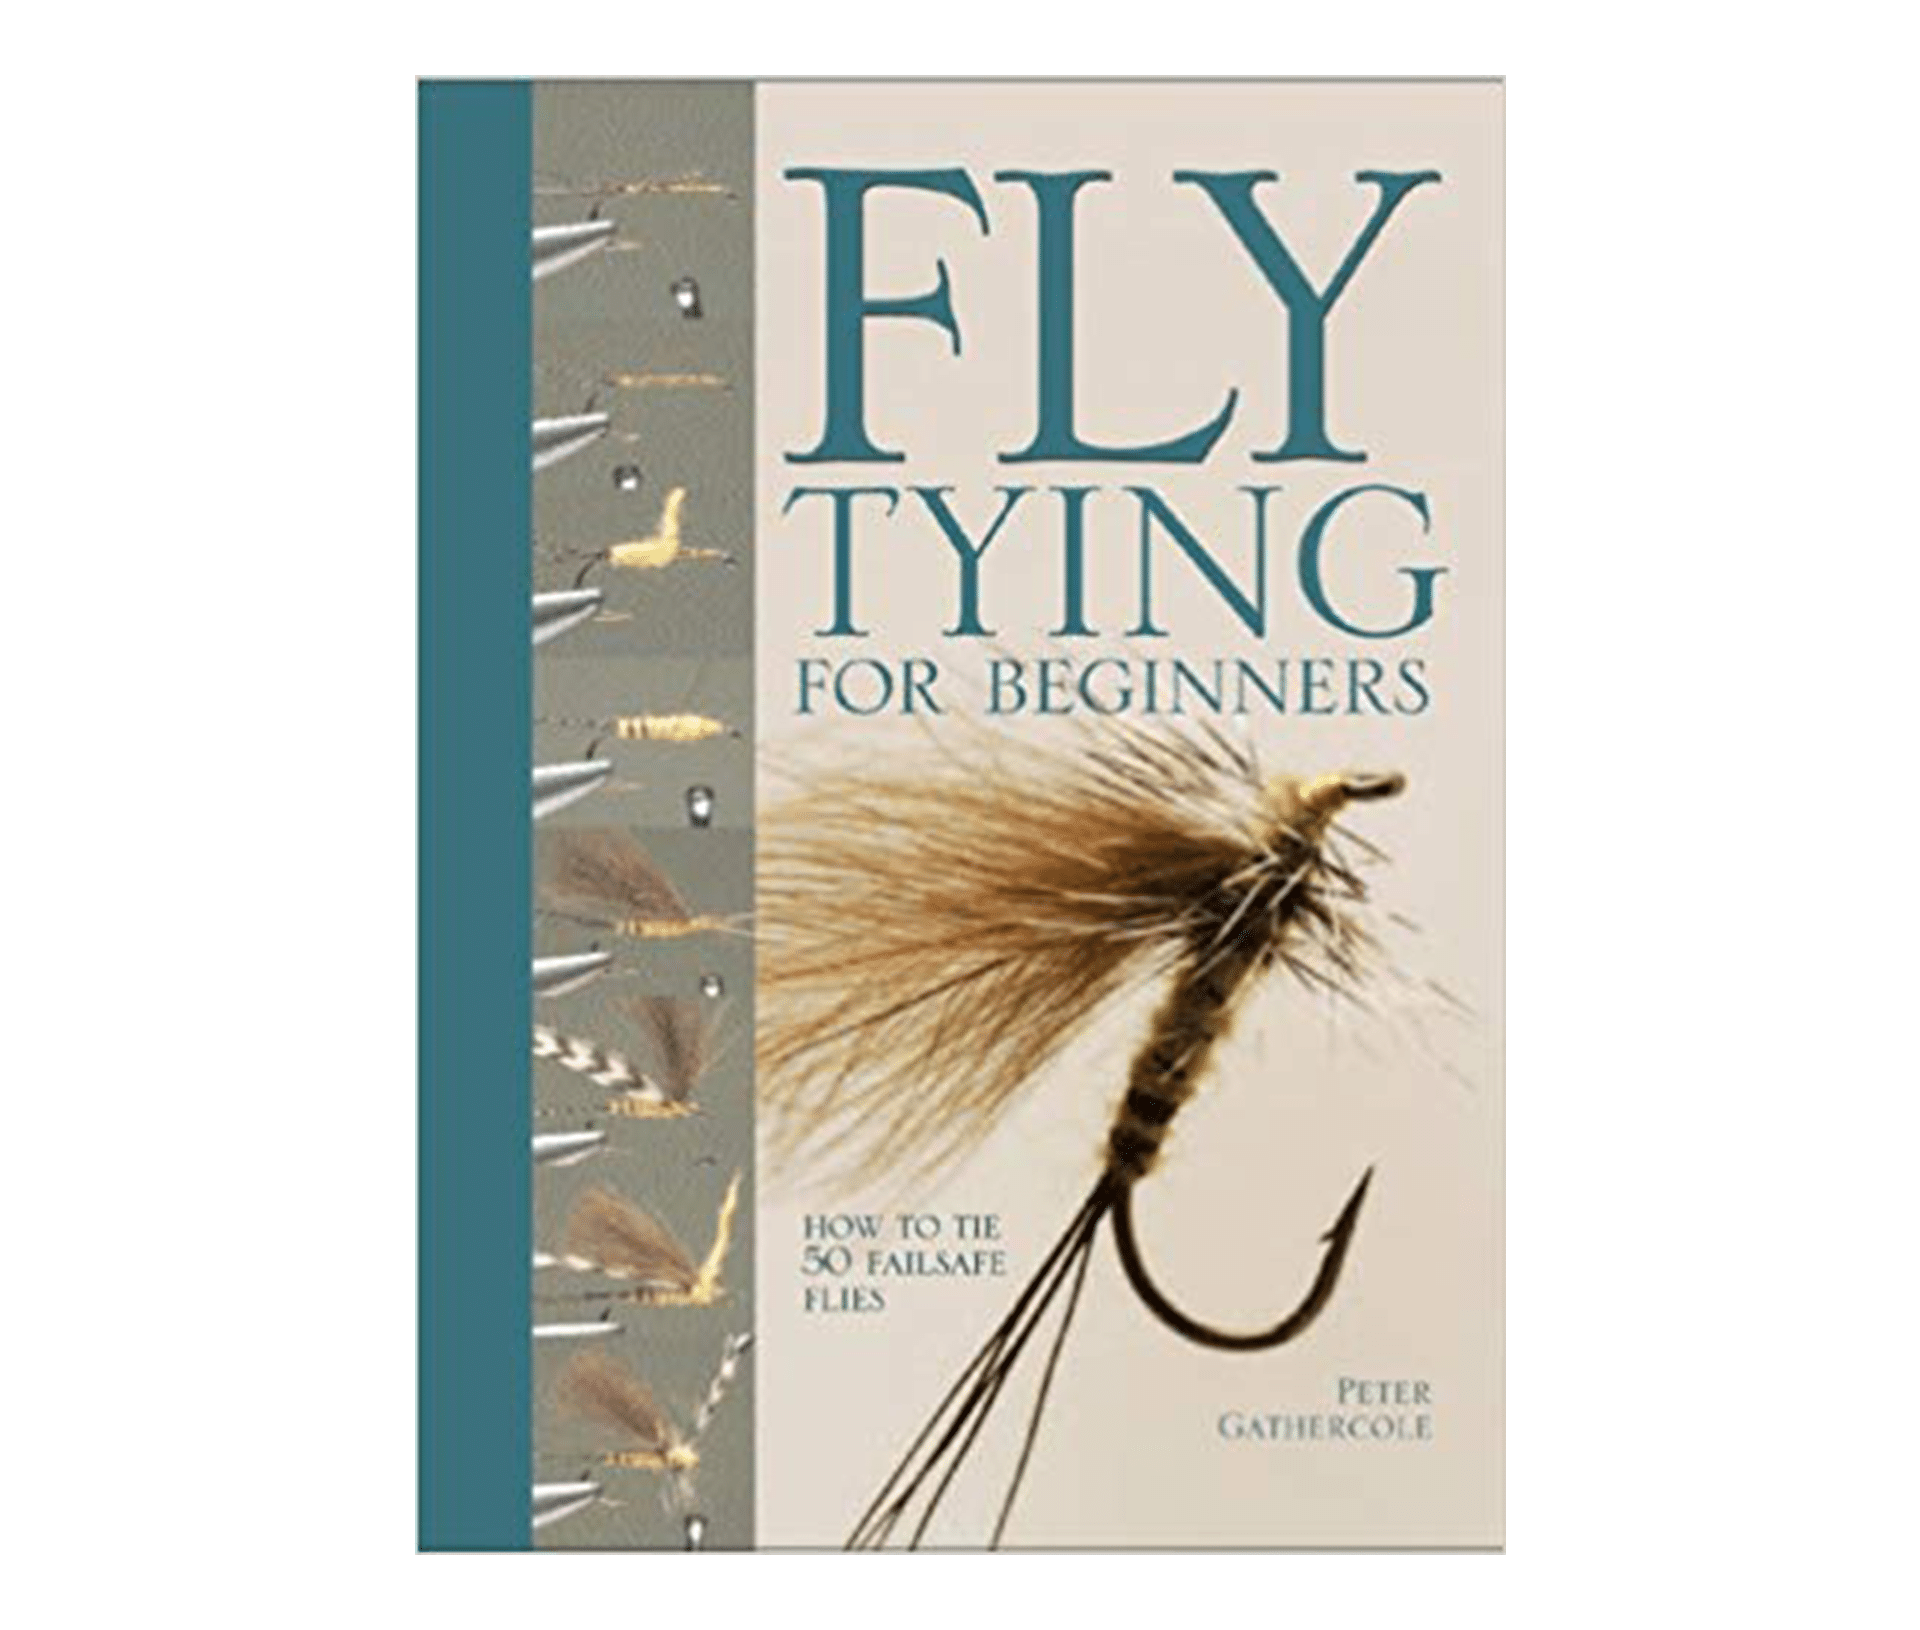 Fly Tying For Beginners: How to Tie 50 Failsafe Flies